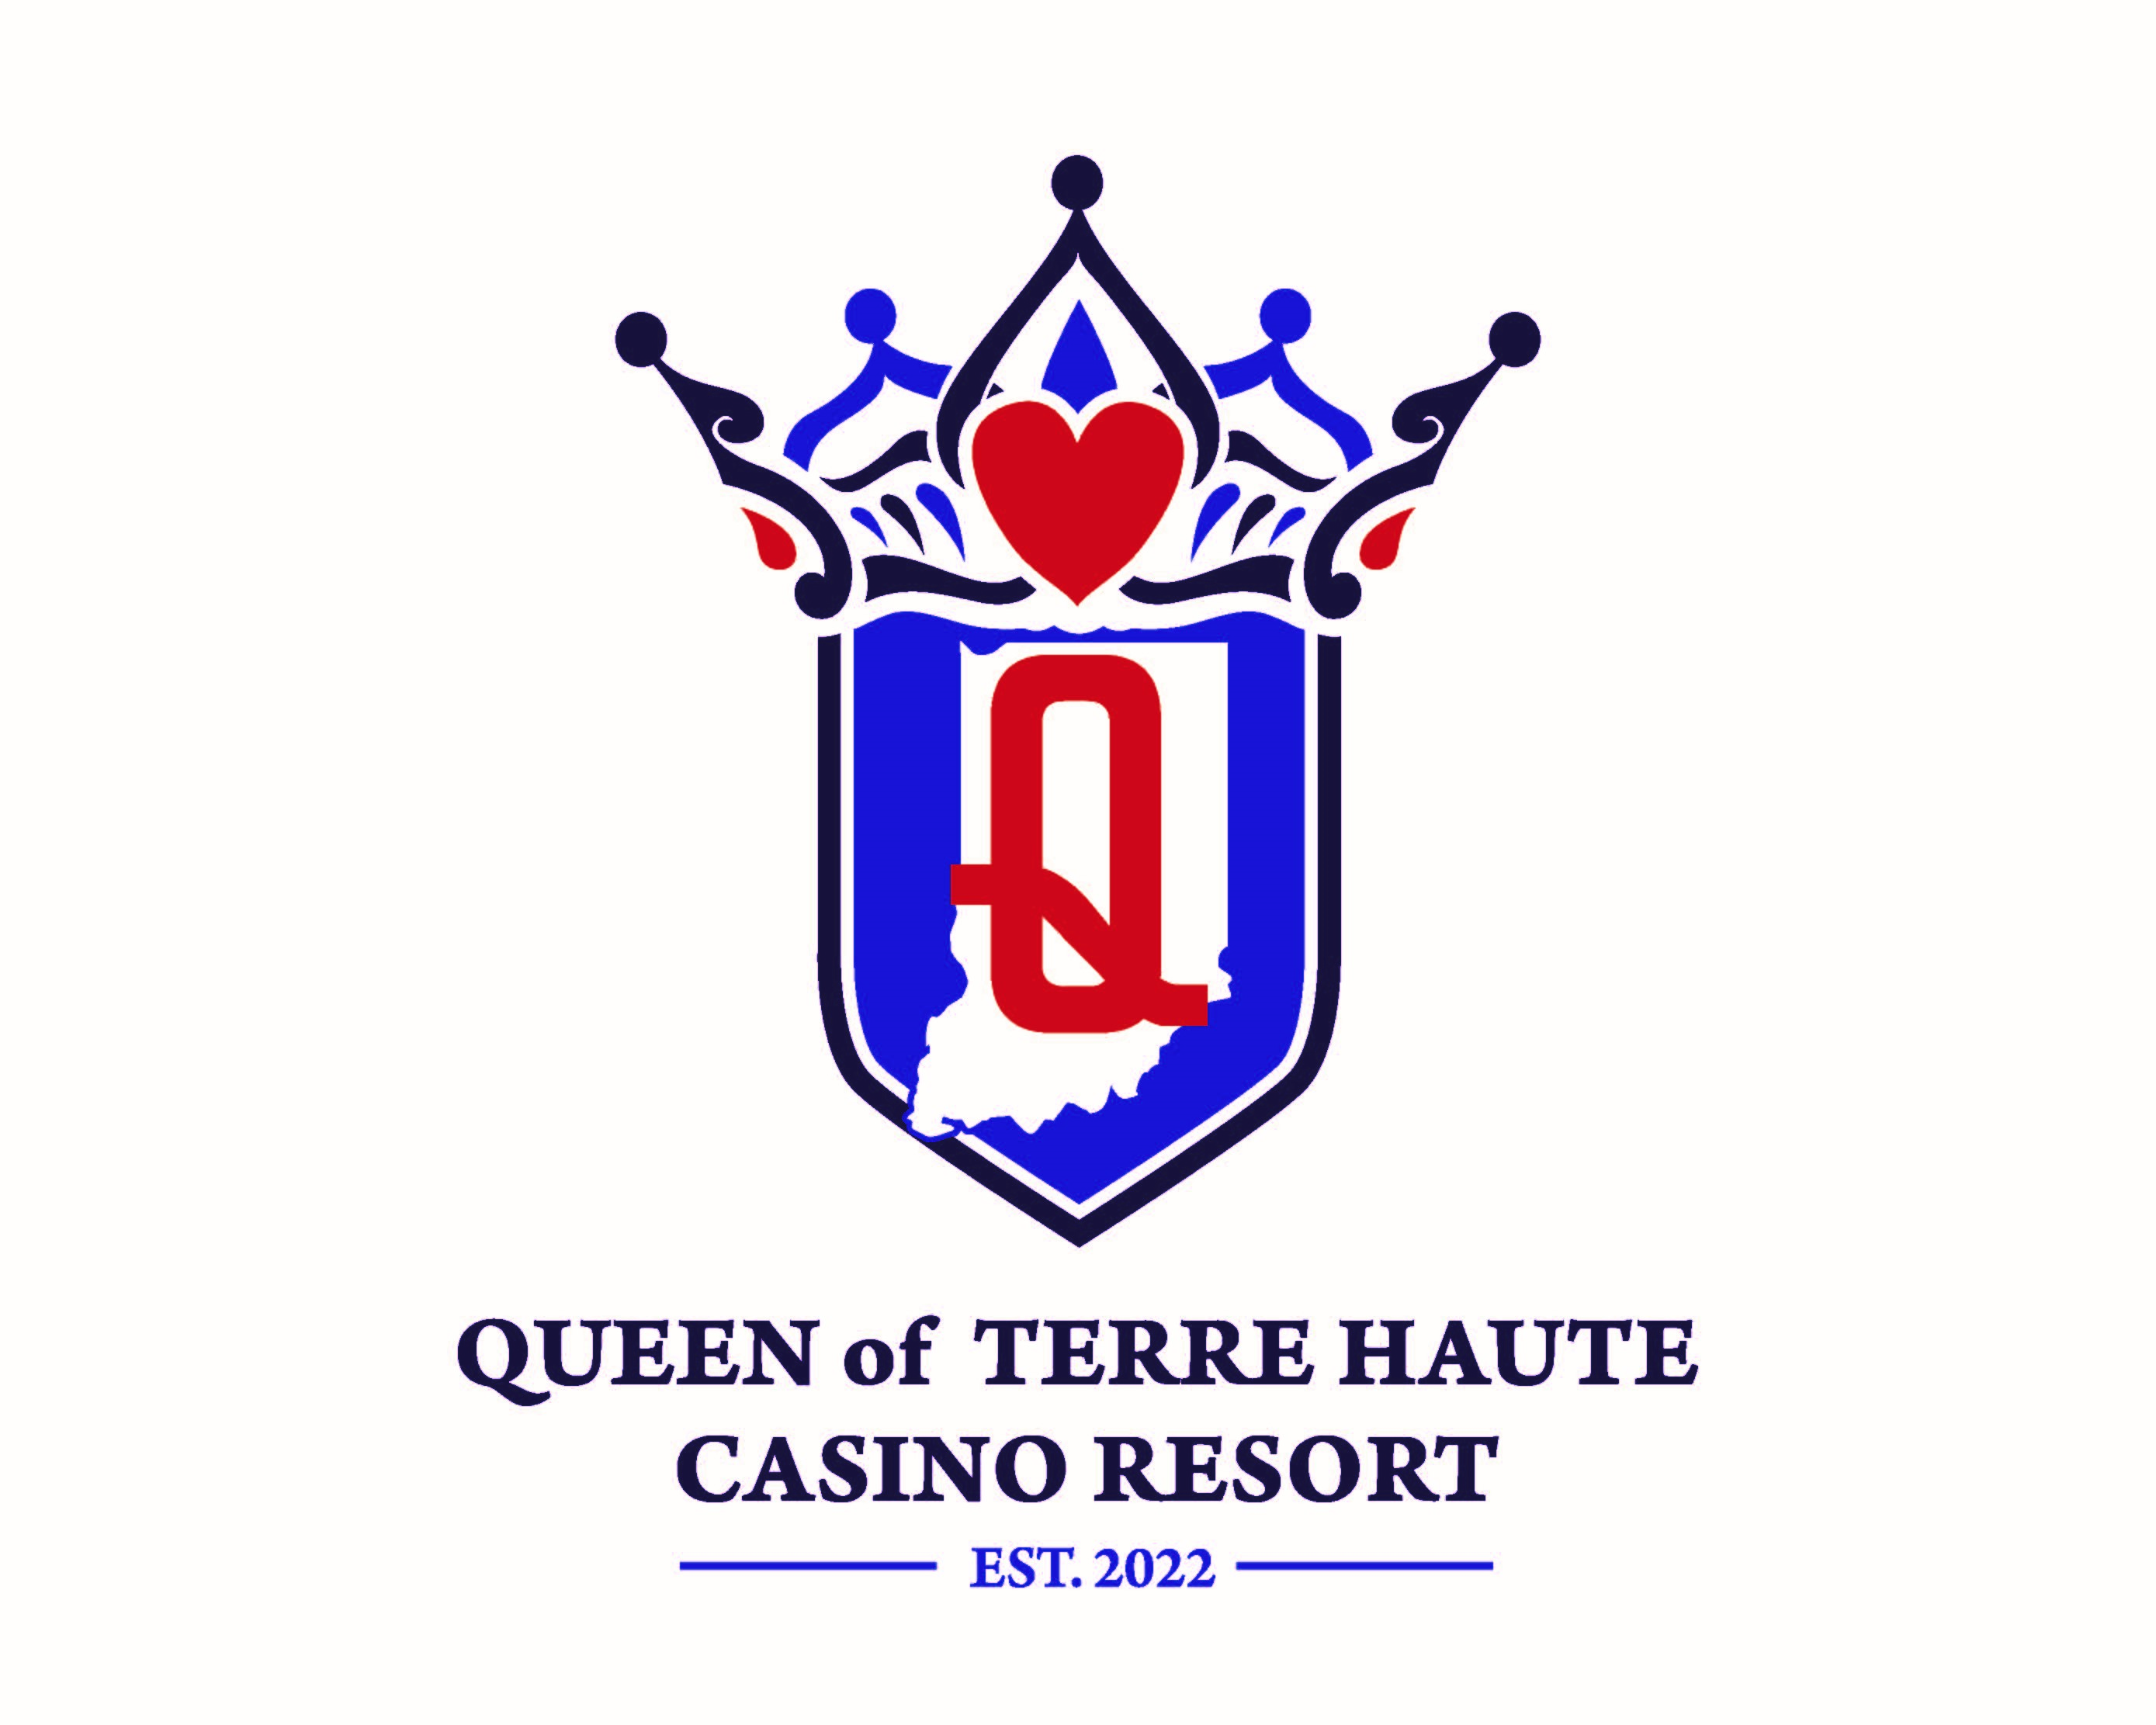 CDI submitted a proposal to develop the Queen of Terre Haute Casino Resort.